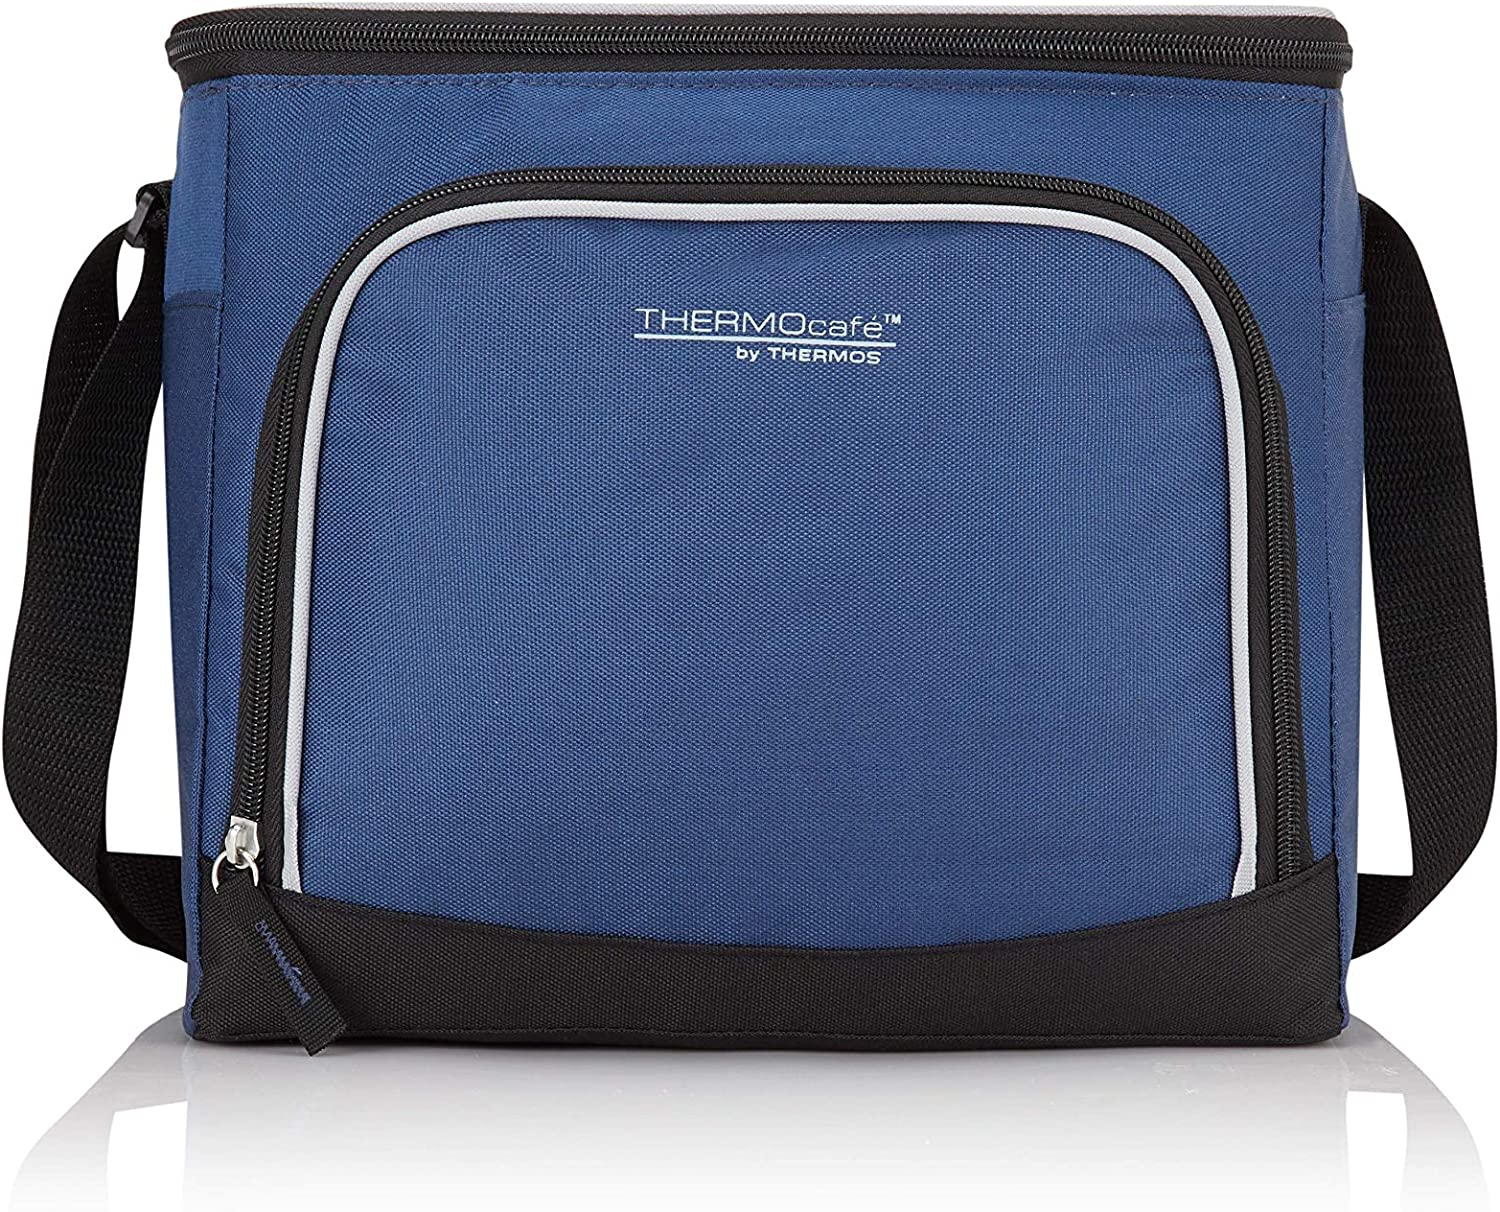 Thermos Thermocafe Cooler Bag 24 Can produits pour le camping 157982